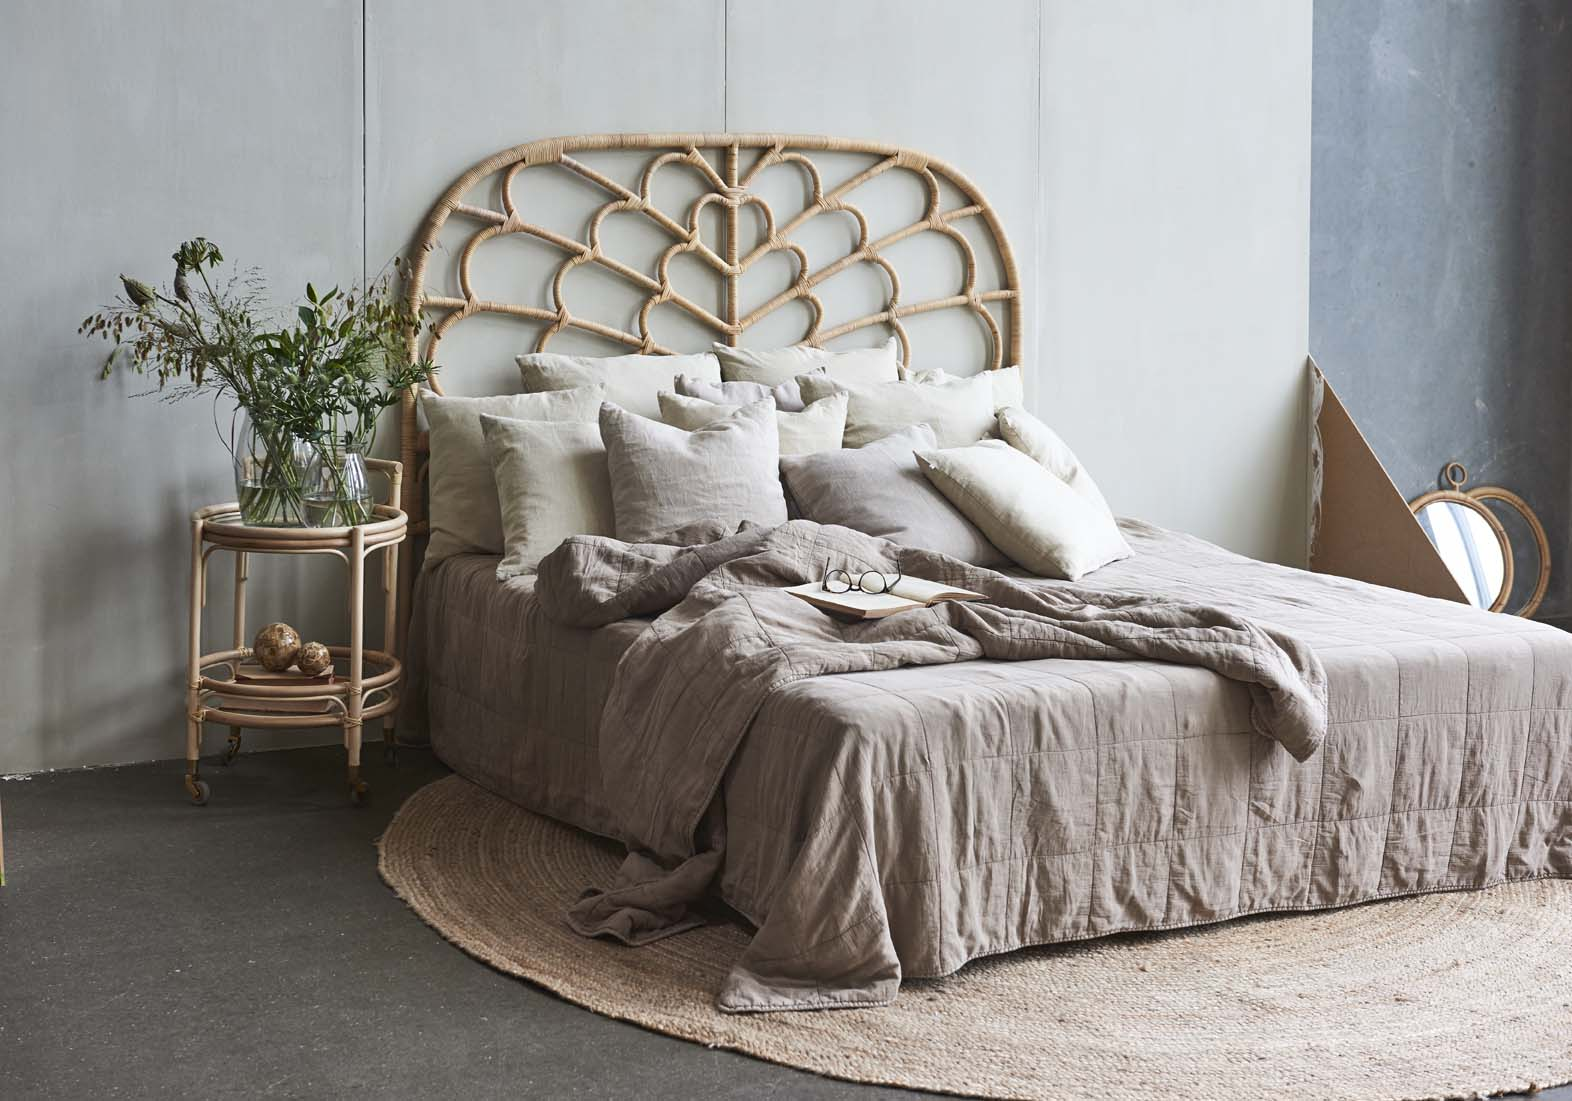 New From Sika Design Rattan Headboards And Baskets Domo